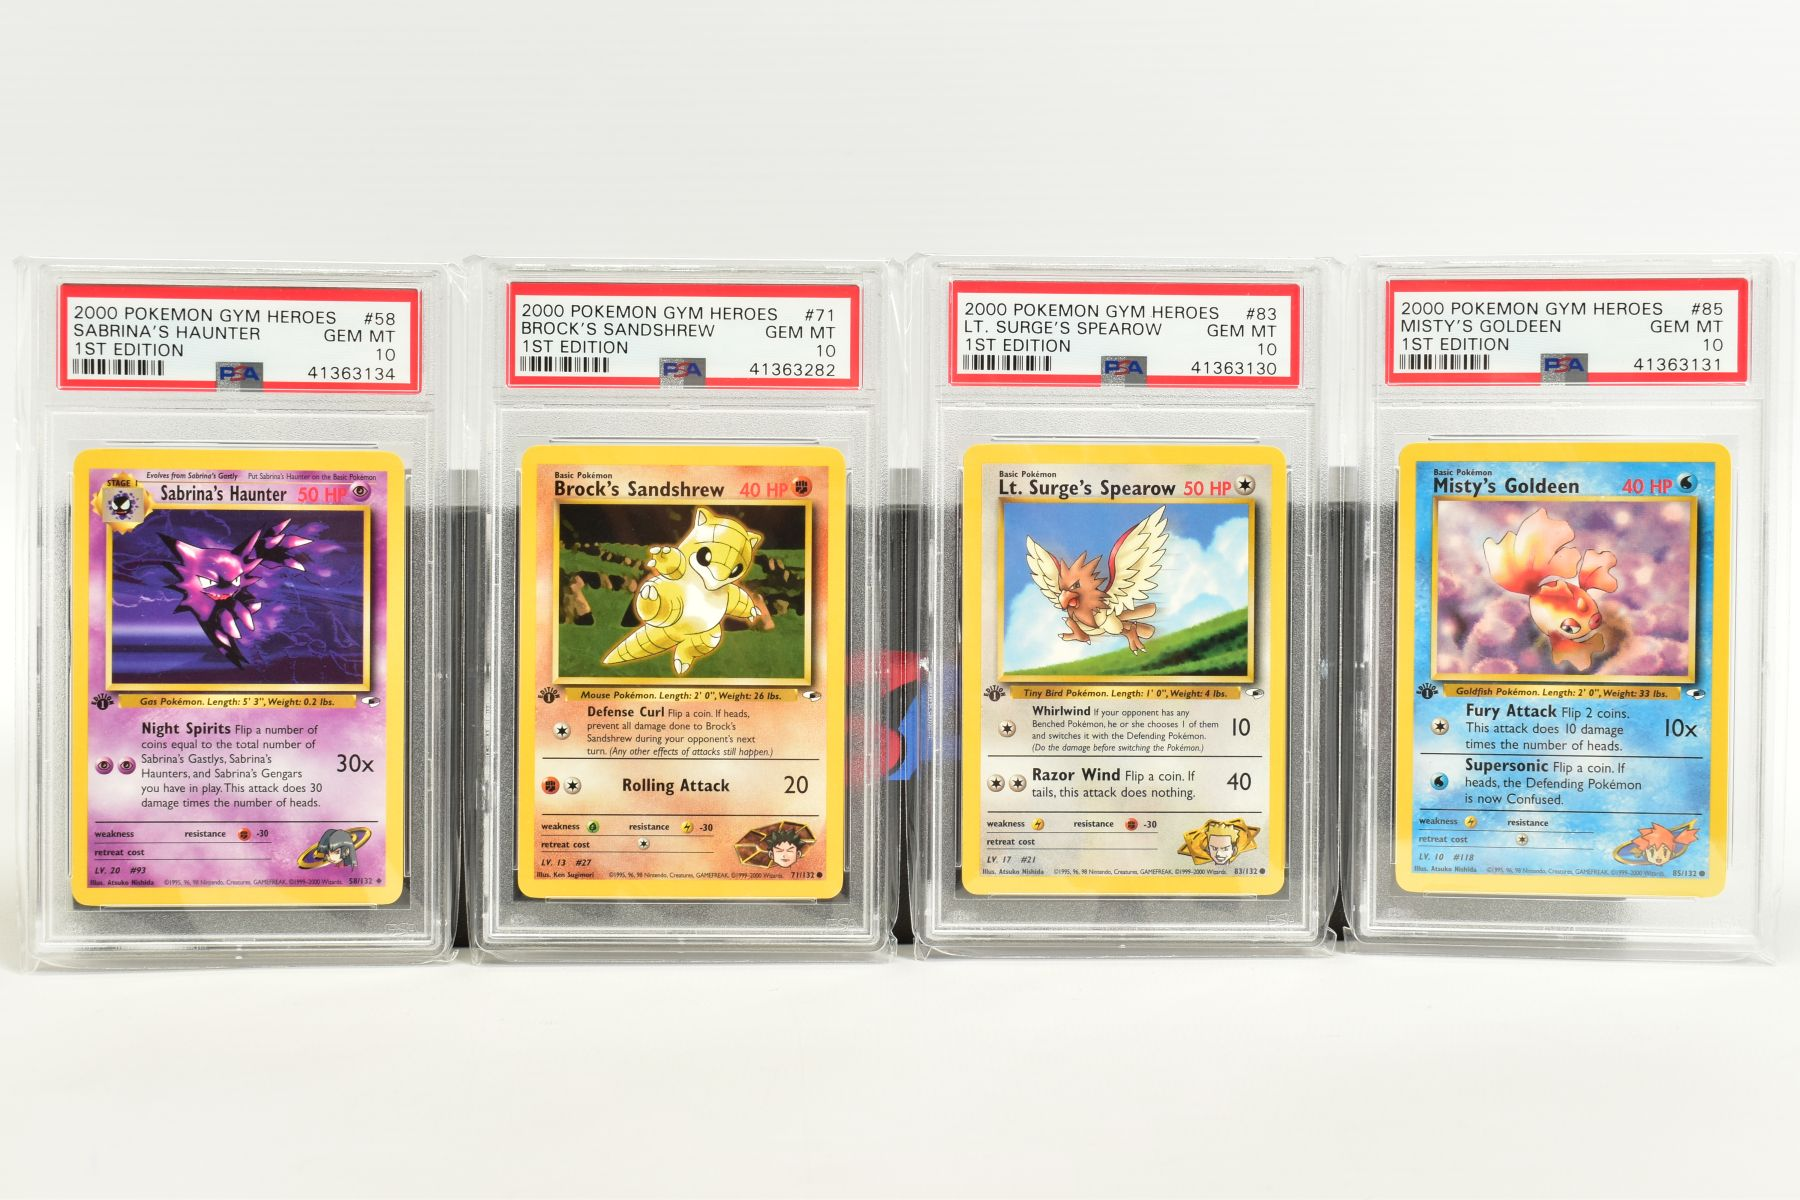 A QUANTITY OF PSA GRADED POKEMON 1ST EDITION GYM HEROES AND GYM CHALLENGE SET CARDS, all are - Image 9 of 12